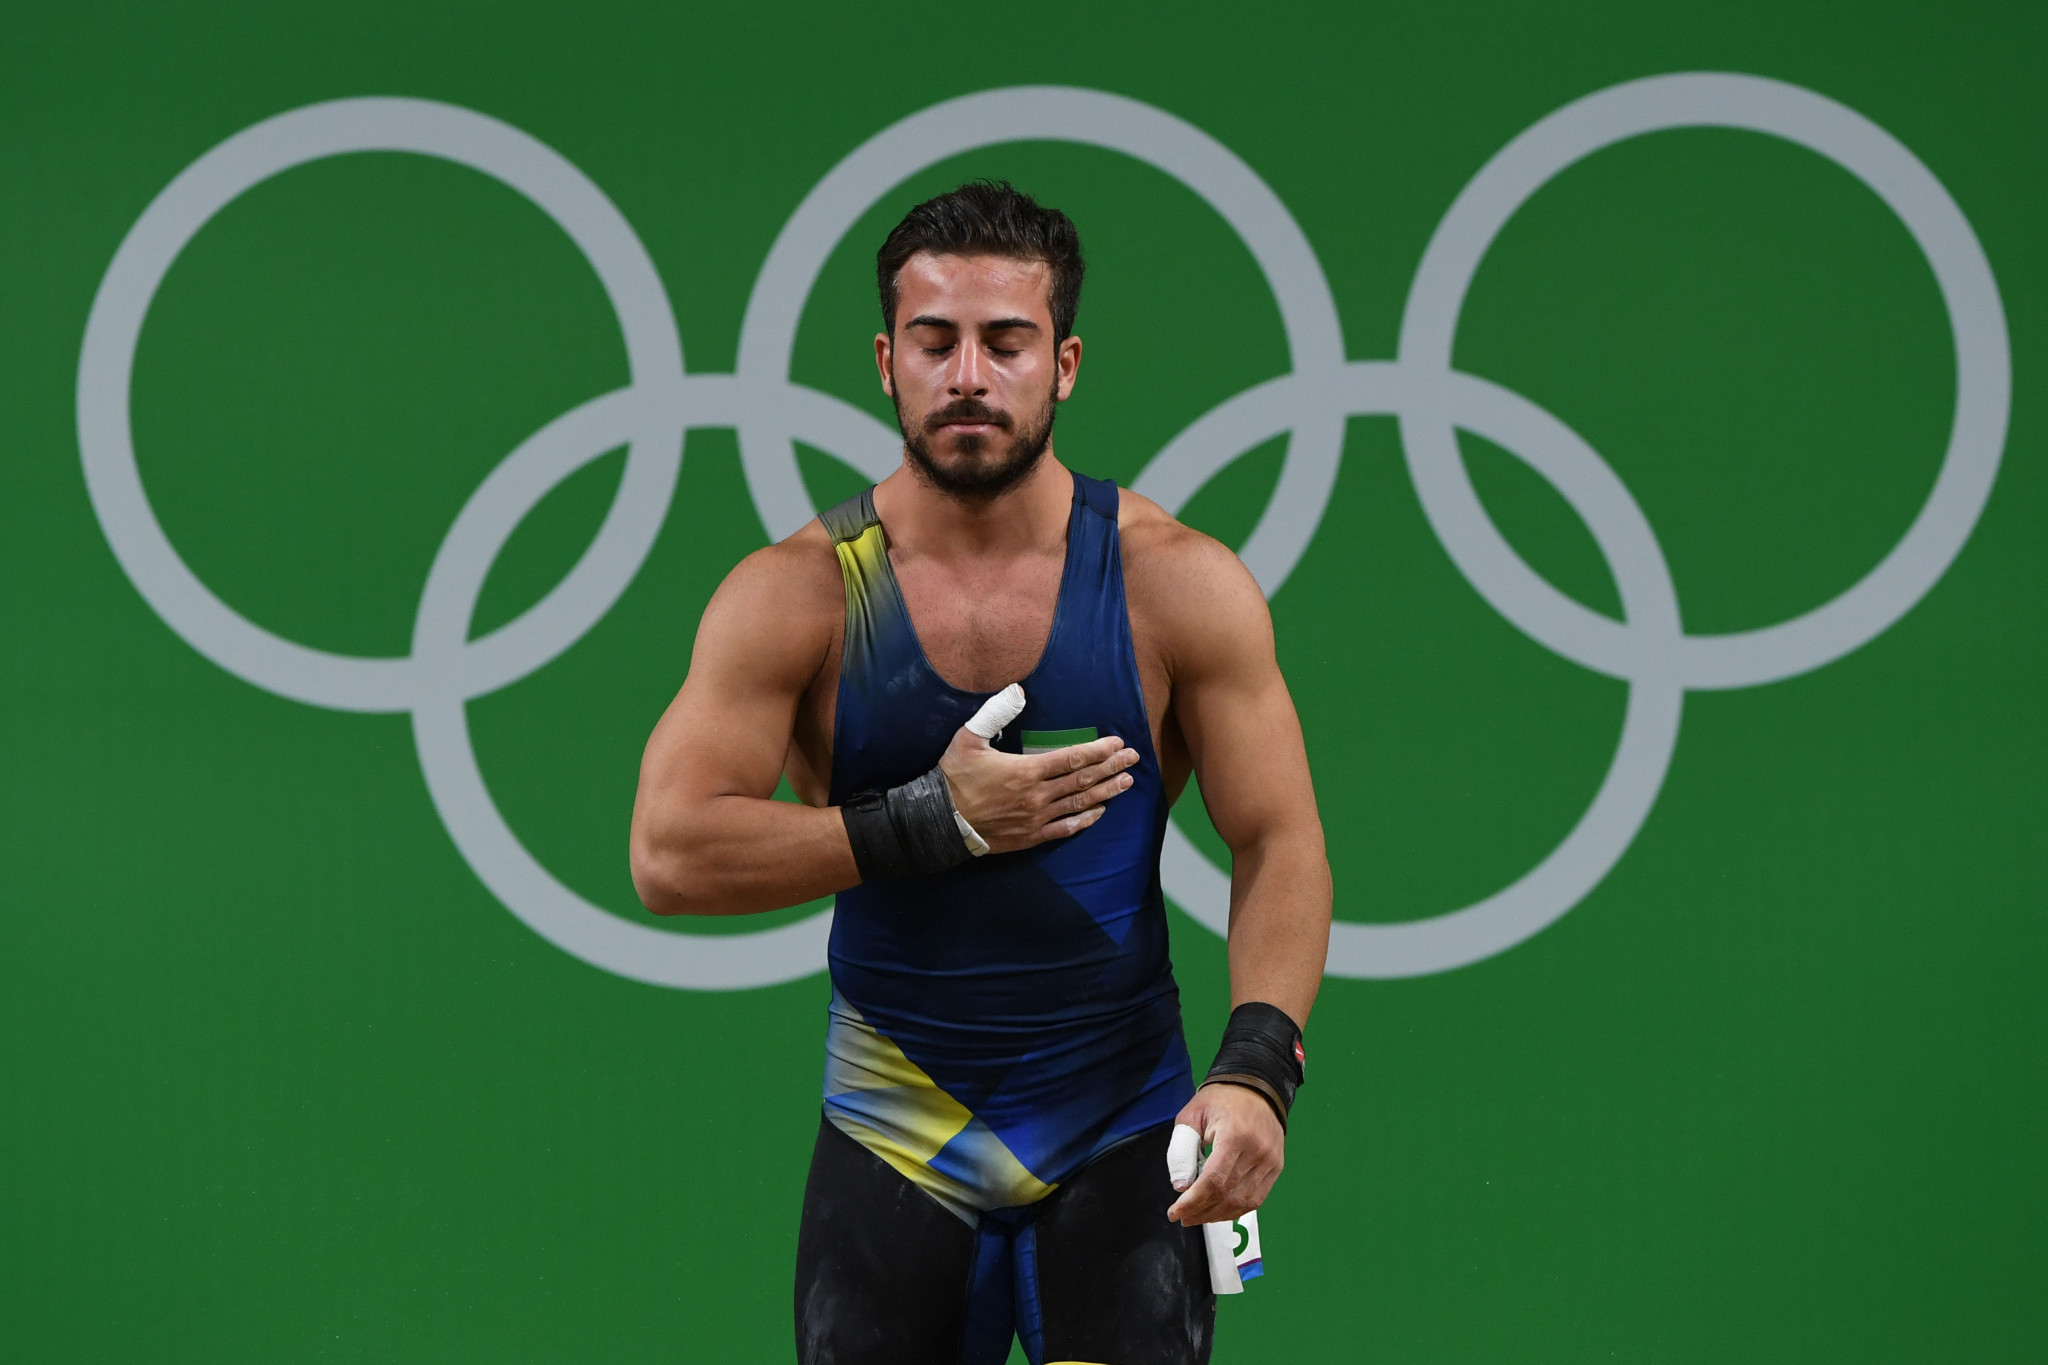 Iran's Kianoush Rostami, who has been refused a visa to enter the United States for the International Weightlifting Federation World Championships ©Getty Images